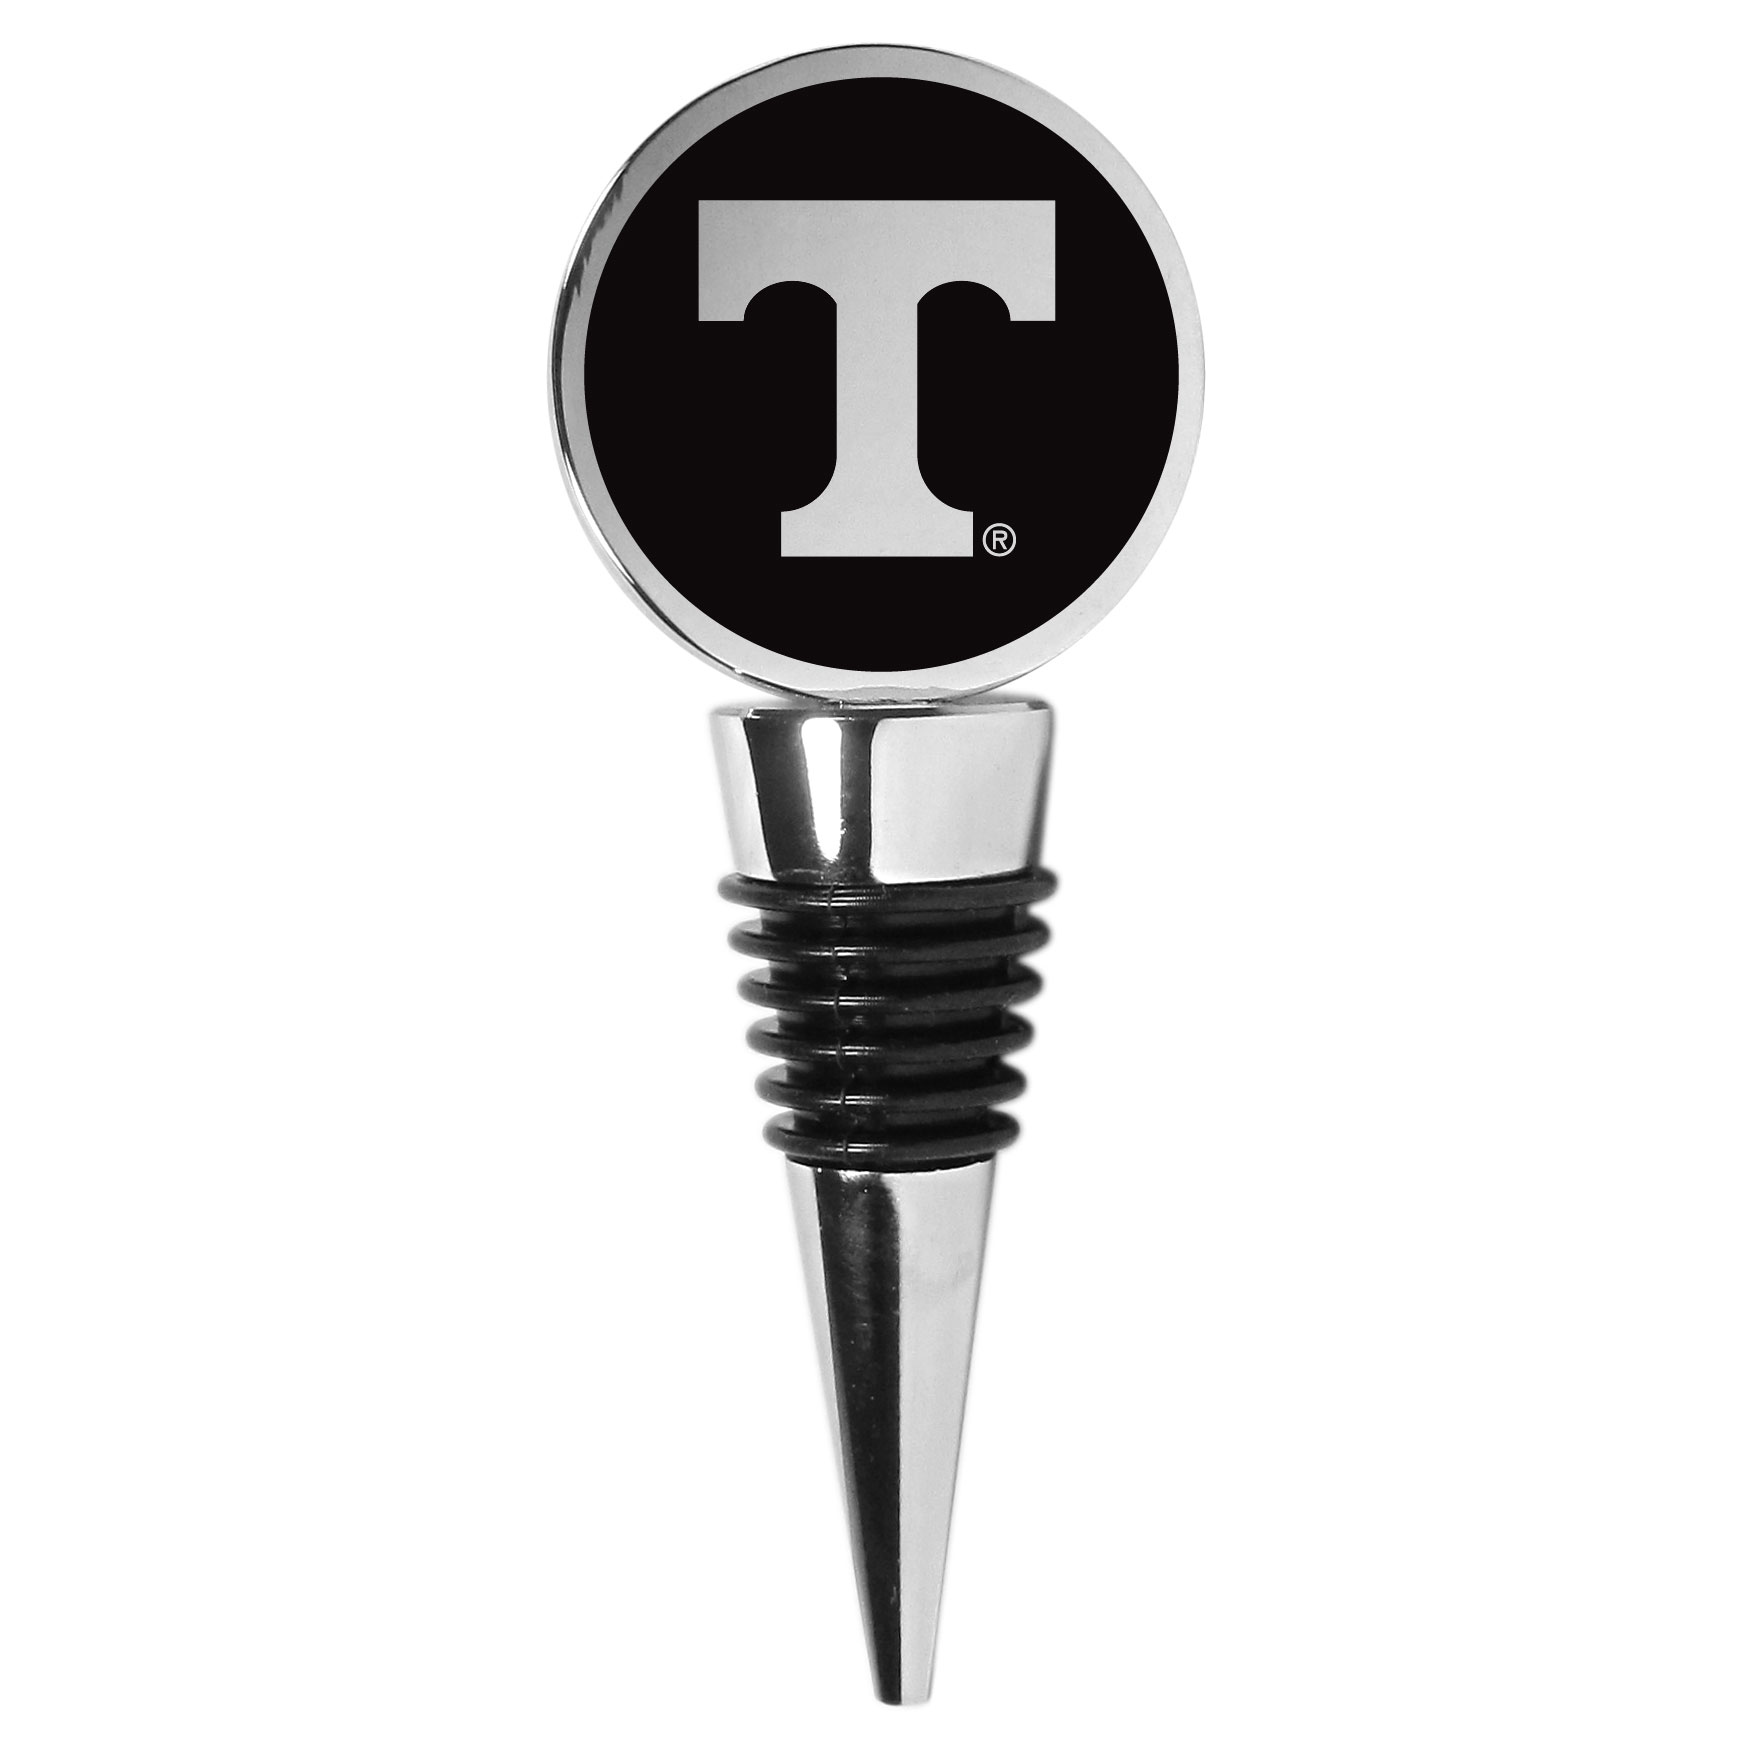 Tennessee Volunteers Wine Stopper - This beautiful Tennessee Volunteers wine stopper has a classy monochromatic logo on the top disc. The tapered rubber rings allow you to create a tight seal on multiple sizes of wine bottles so that you are able to preserve the wine for later enjoyment. This a perfect addition to a game day celebration.